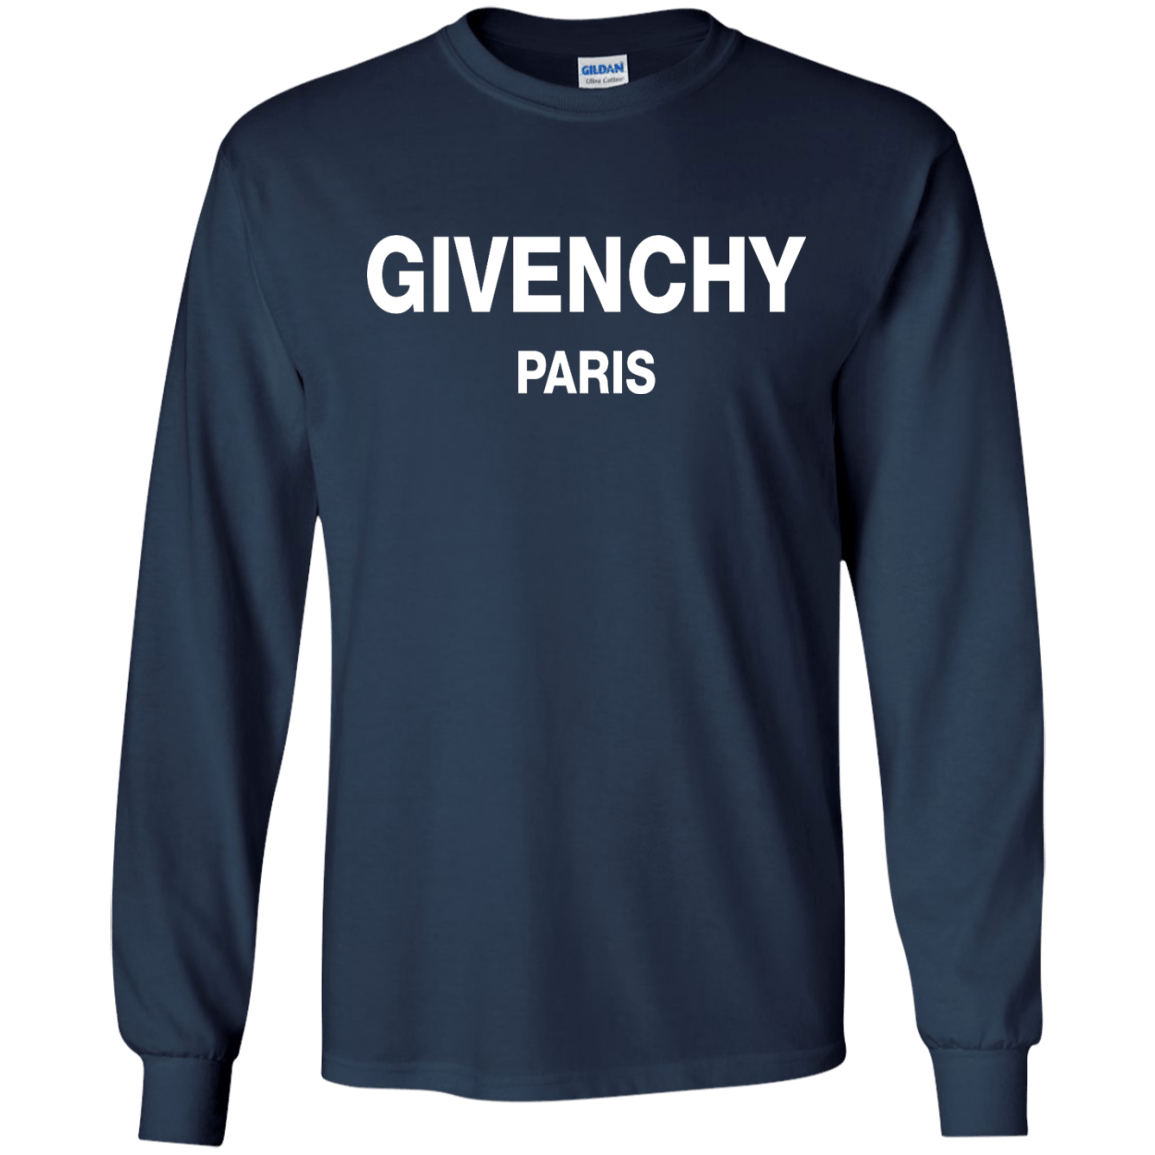 givenchy paris t shirt tank racerback icestork. Black Bedroom Furniture Sets. Home Design Ideas